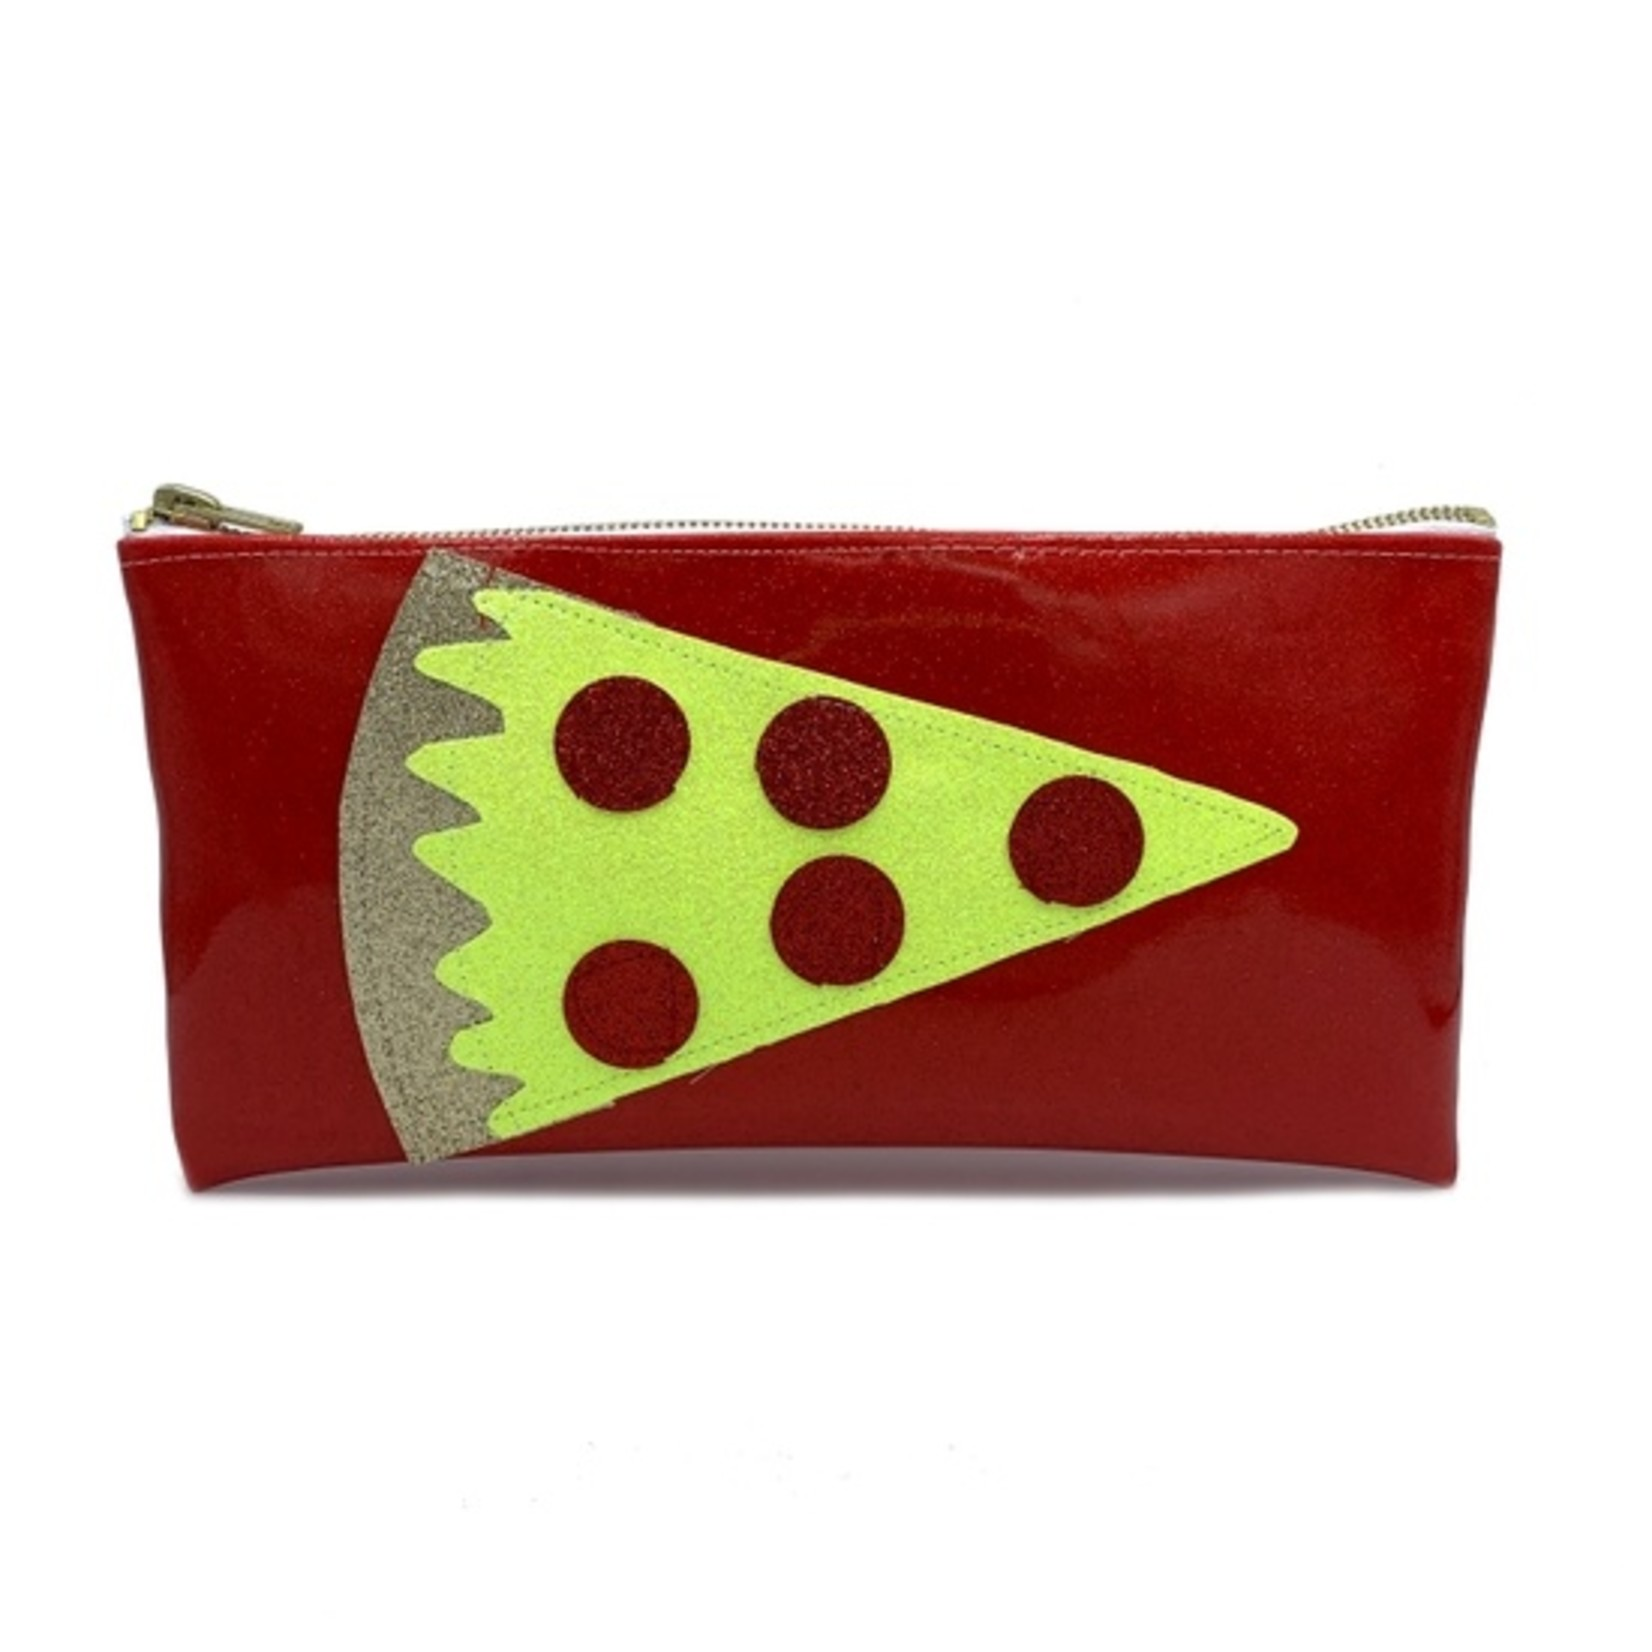 Julie Mollo Pizza Clutch!